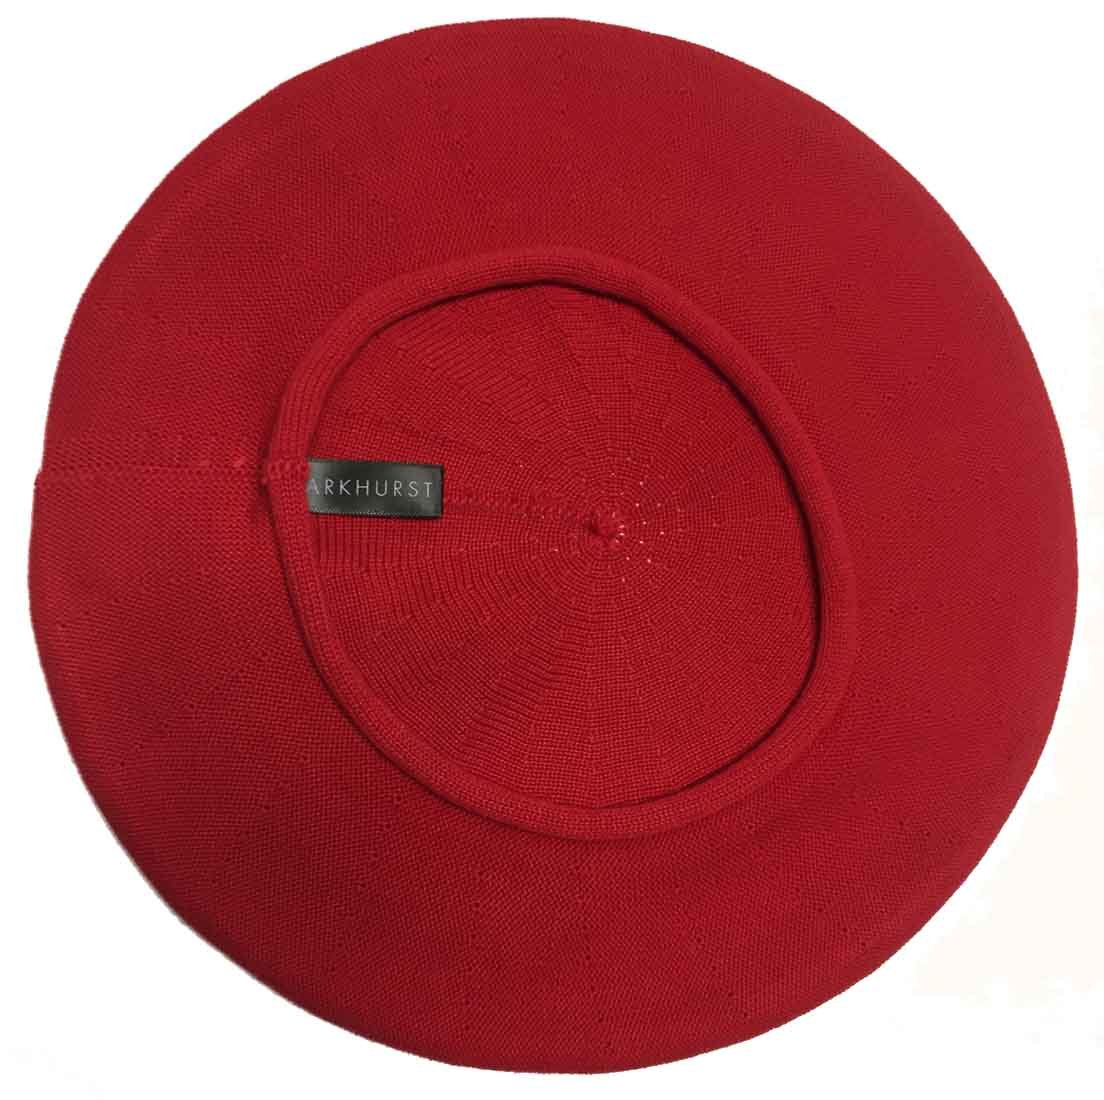 Parkhurst of Canada 11-1/2 Inch Cotton Knit Beret (Red)